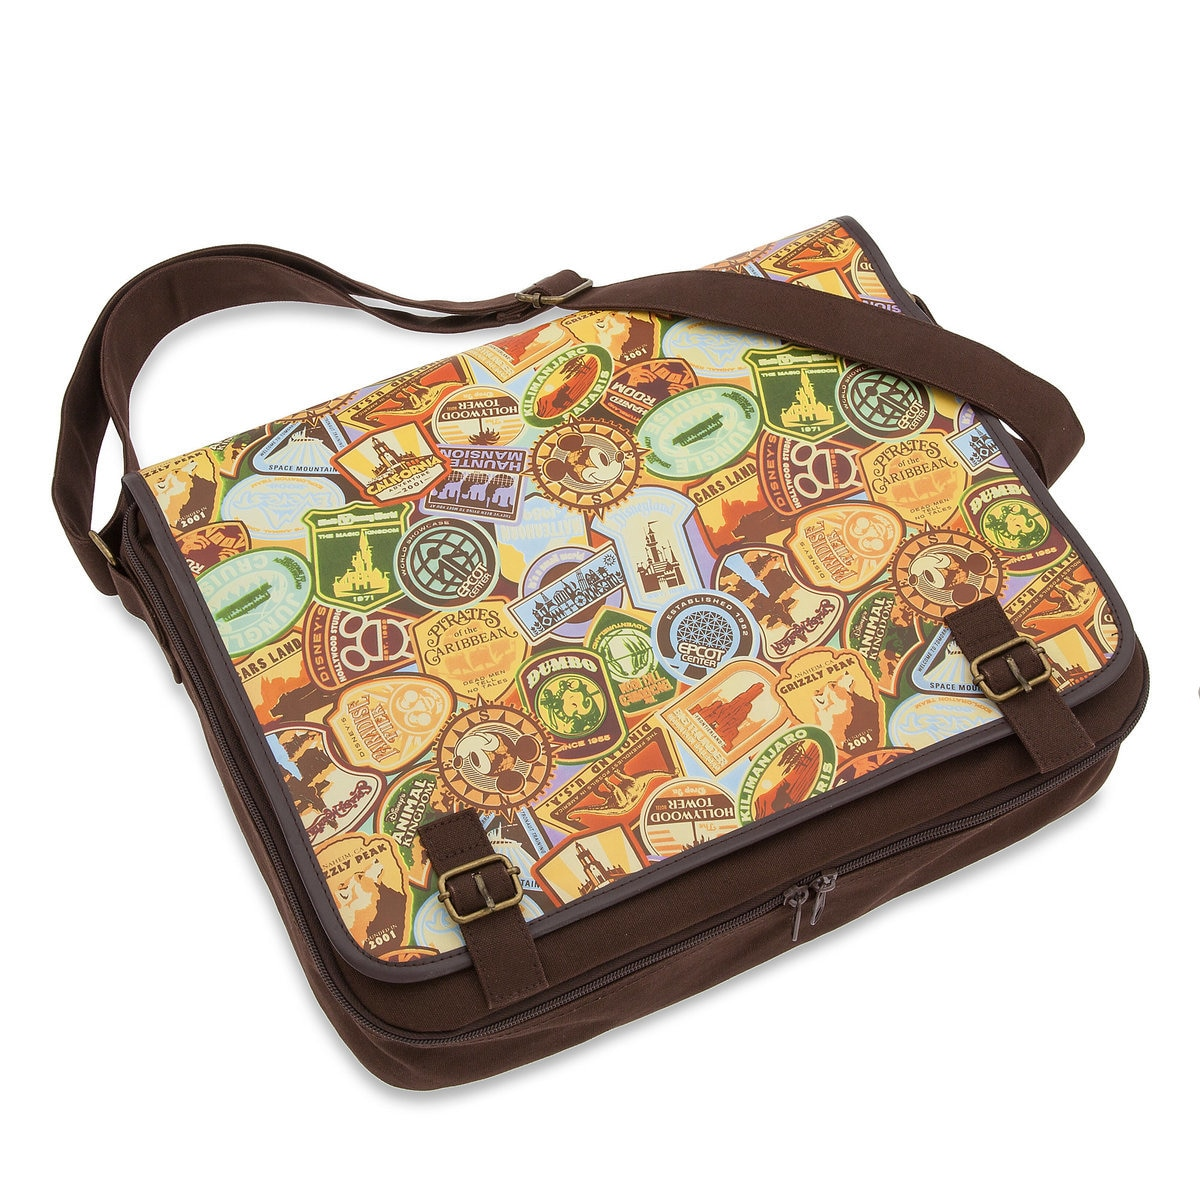 Product Image of Disney Parks Deluxe Pin Trading Bag - Large # 1